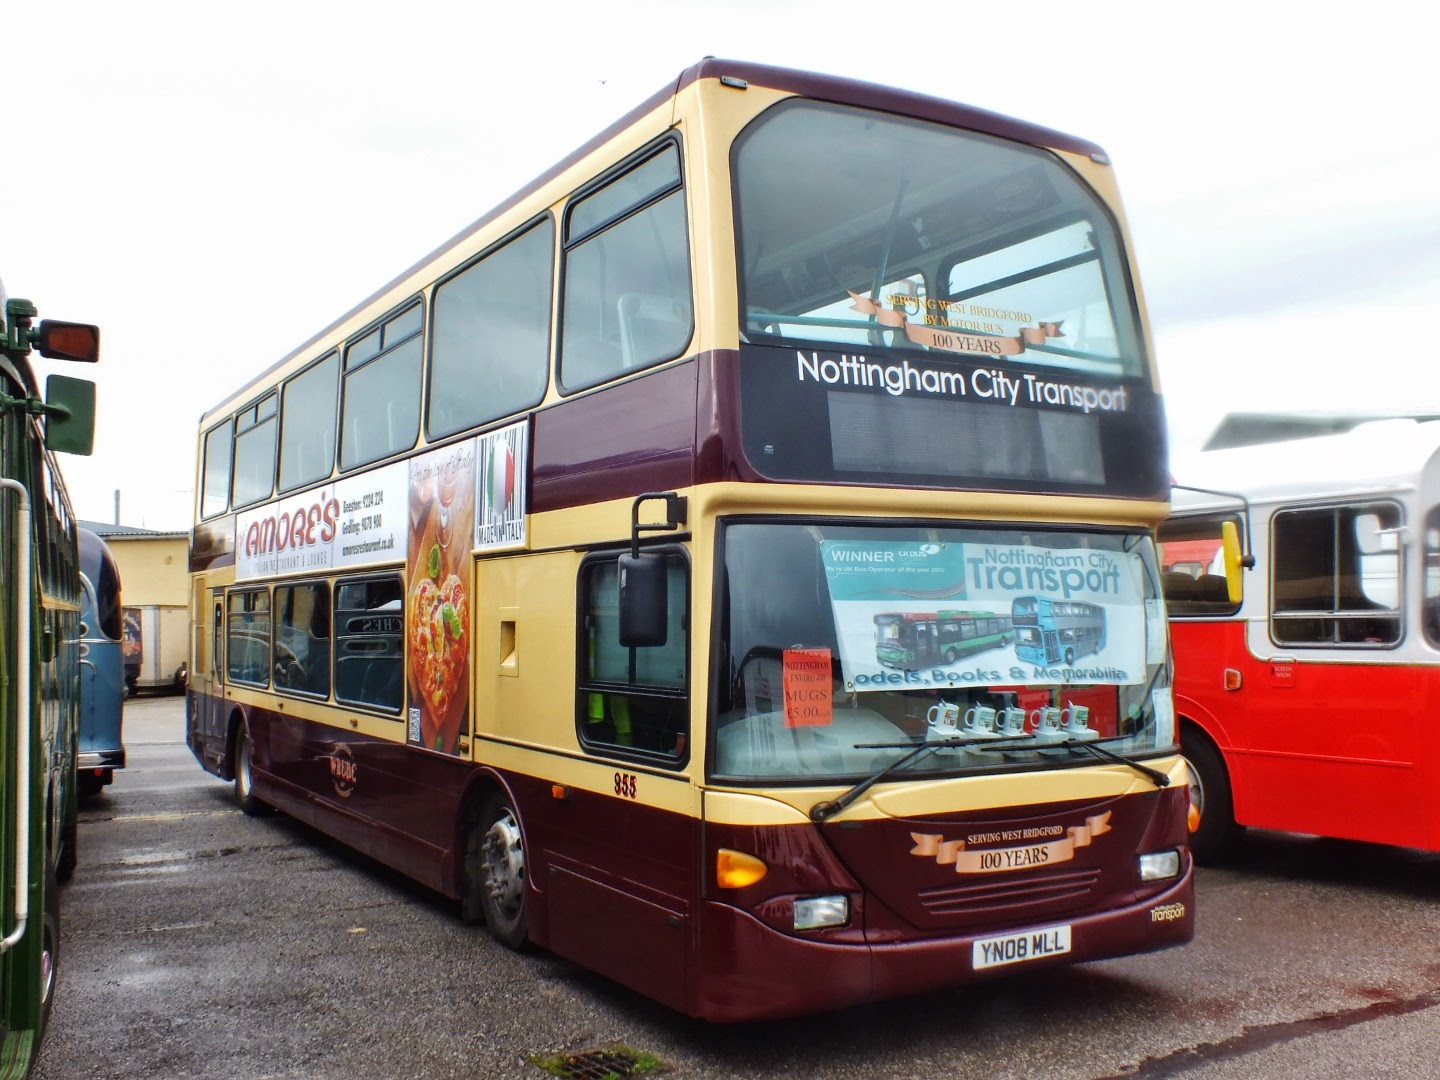 2014 Marked The Centenary Of The West Bridgford Udc Bus Operation In Nottinghamshire The Fleet Surrendered Its Independence To Neighbouring Nottingham In